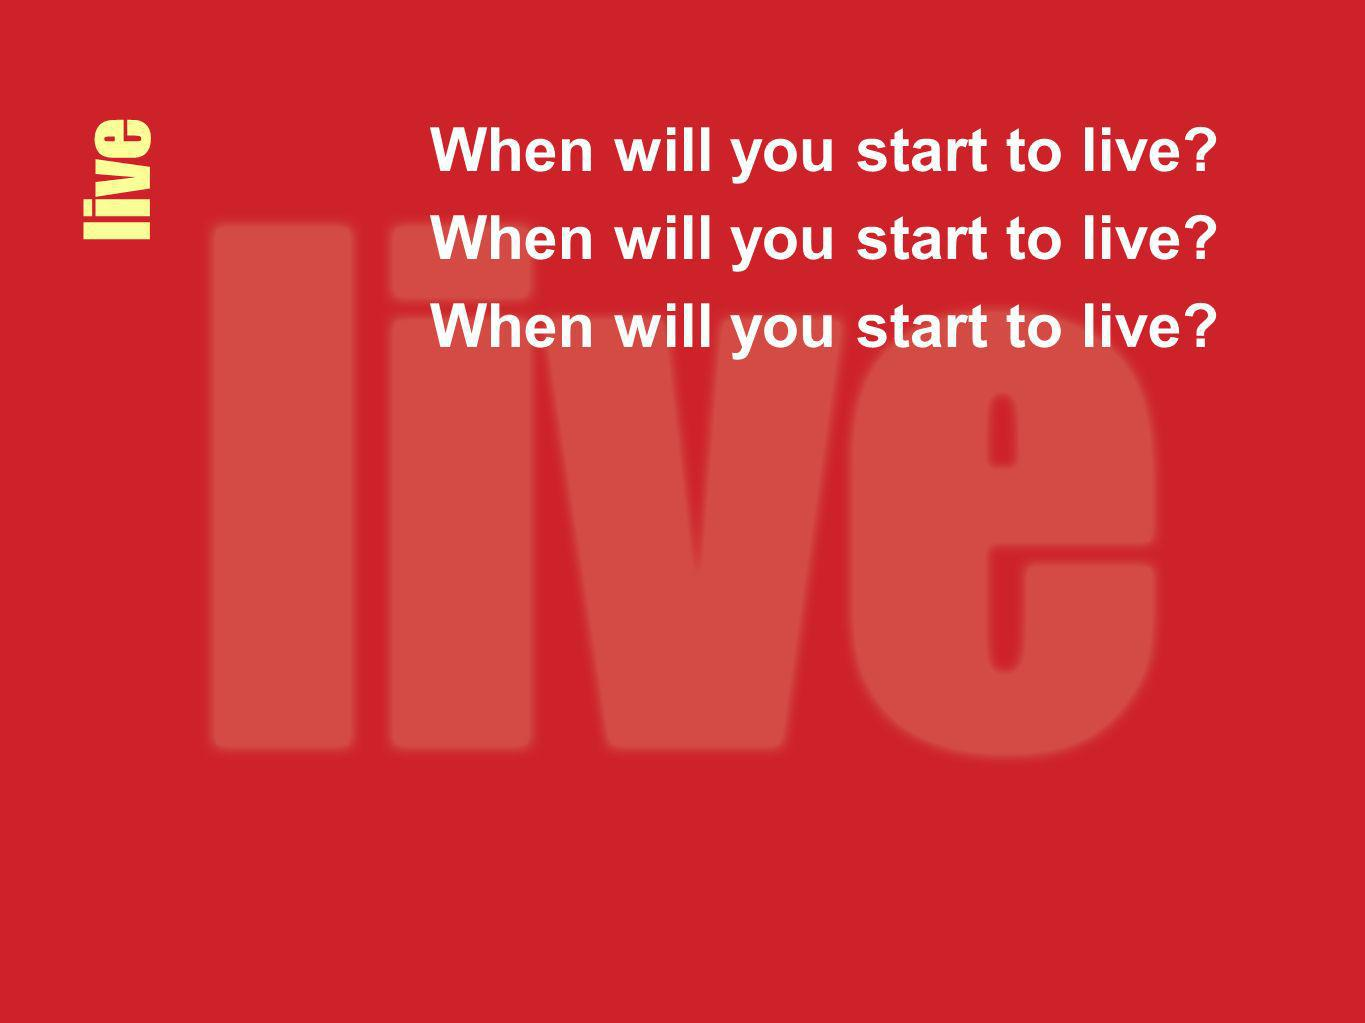 live When will you start to live?